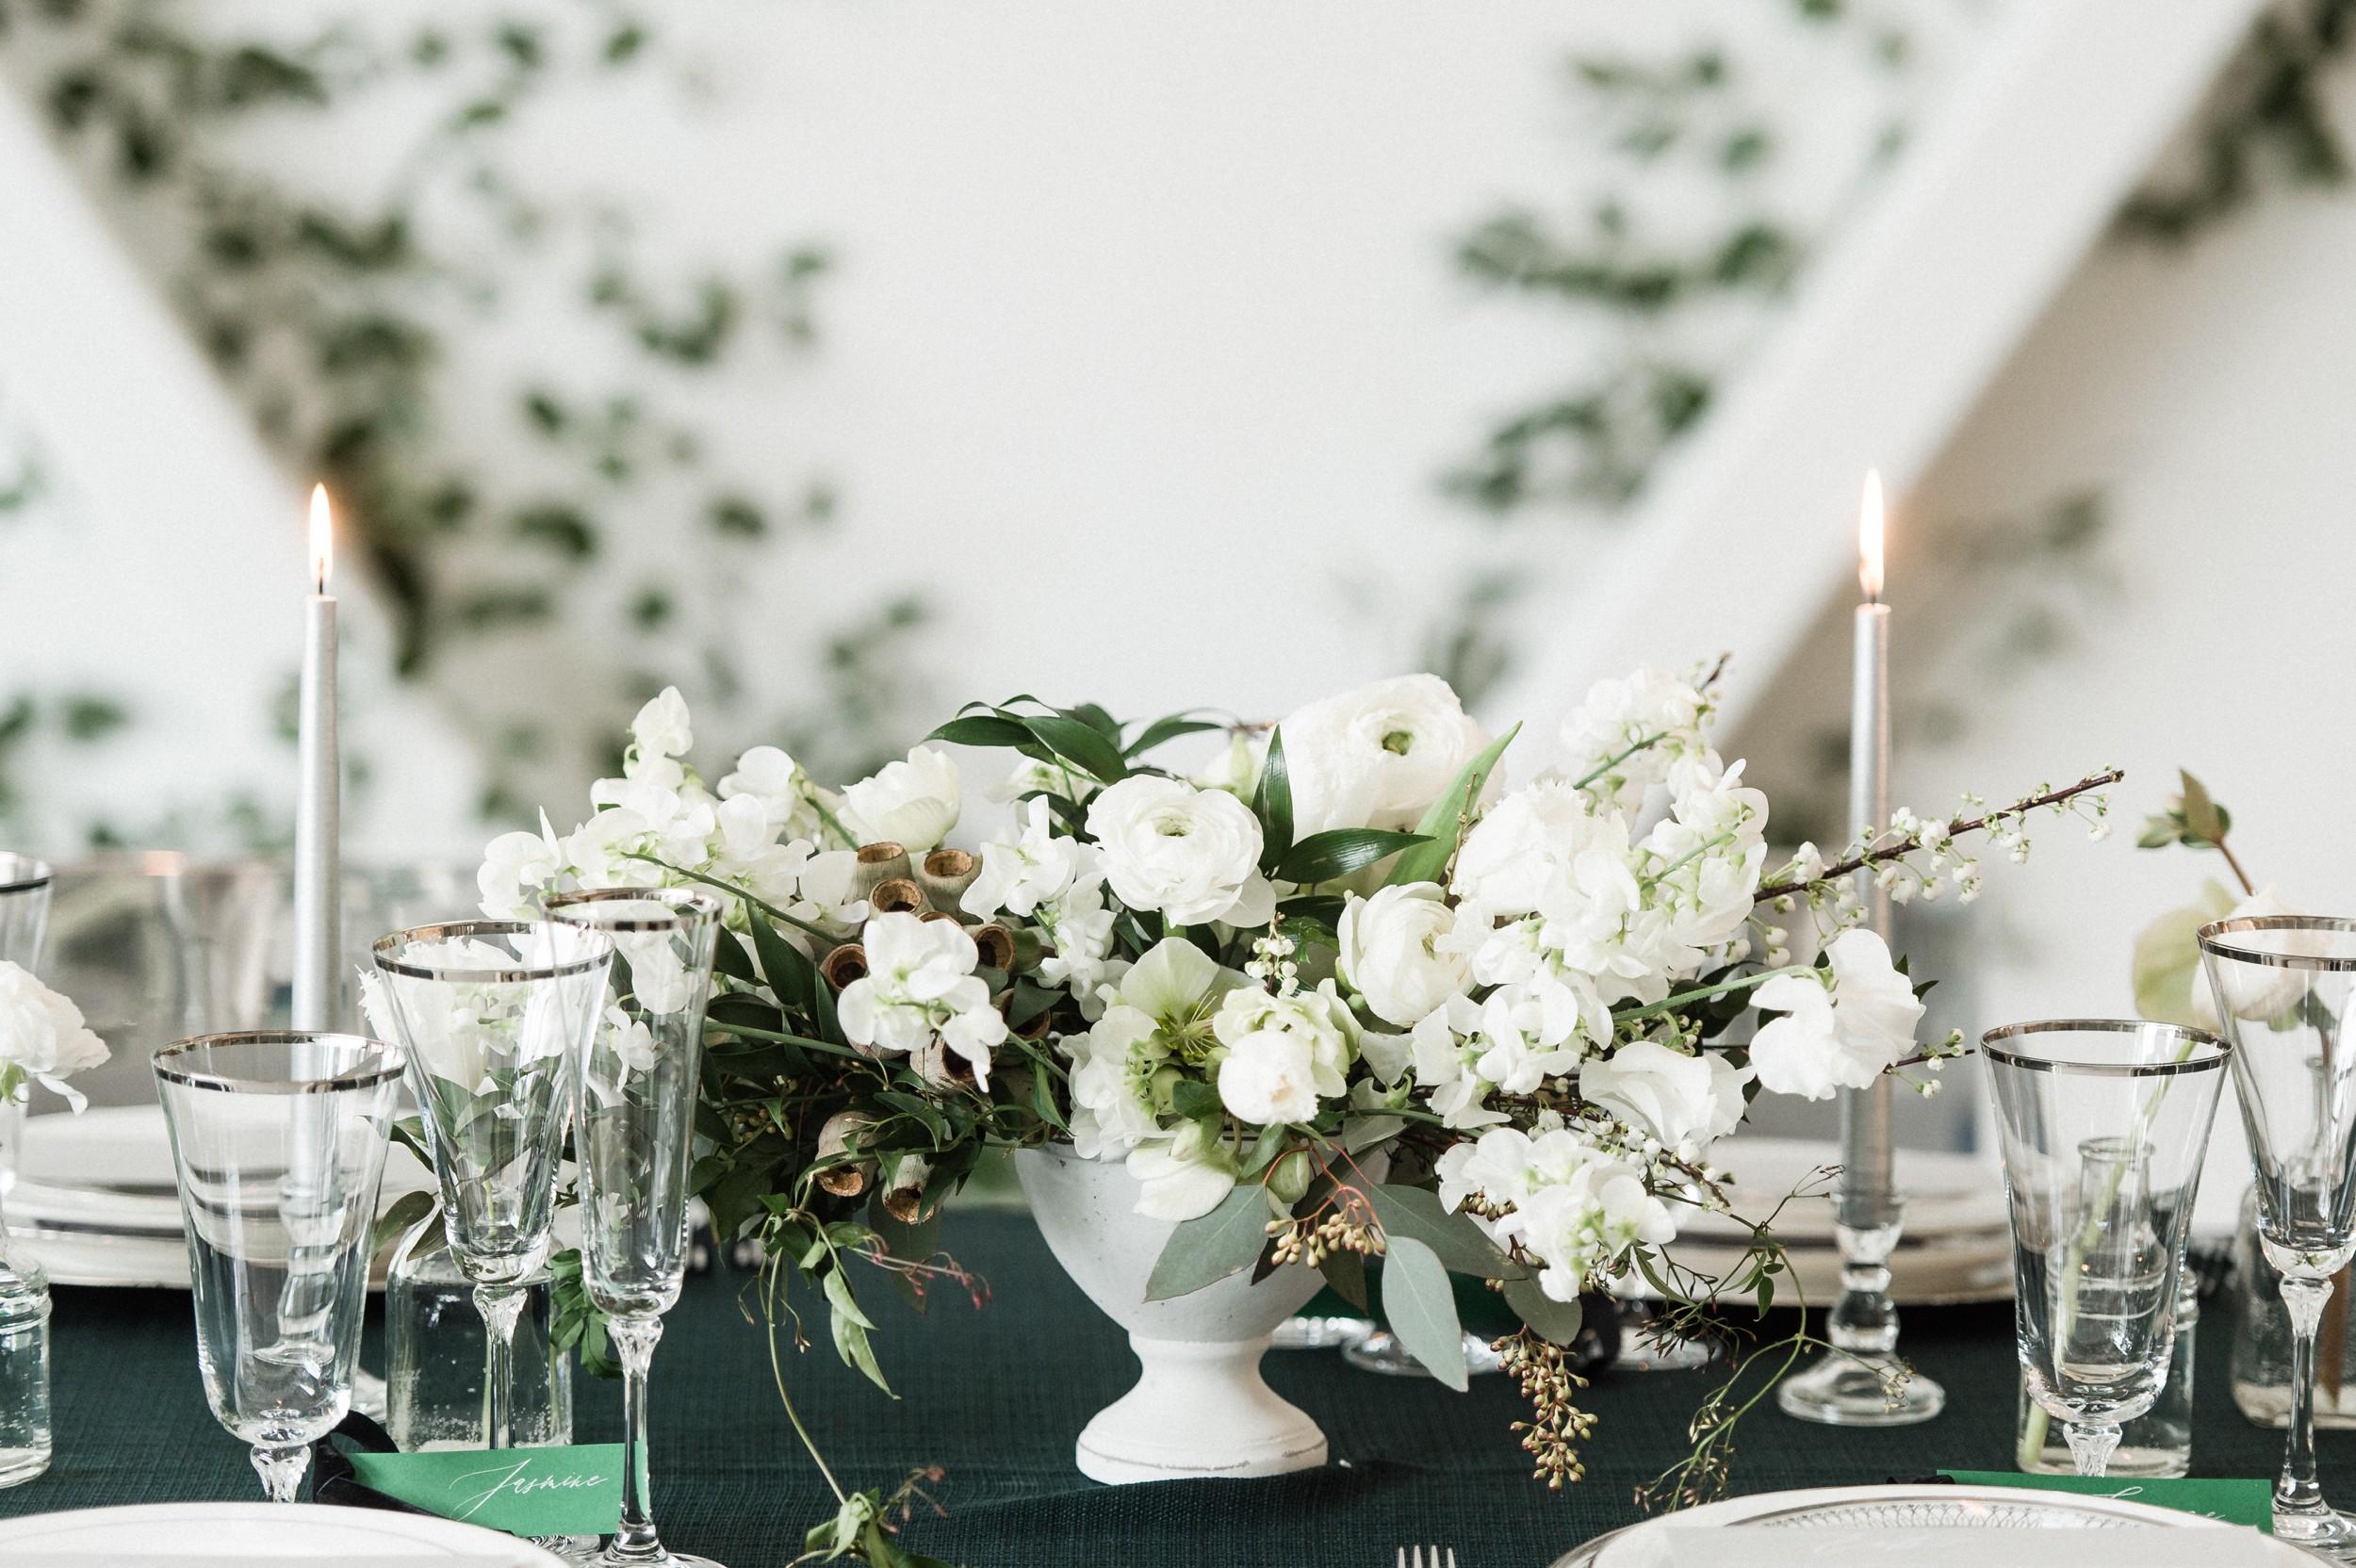 Artists for humanity epicenter wedding | Boston wedding | modern white floral centerpiece and bud vases by Twig & Briar | green botanical wedding inspiration | candles and ivy feature wall